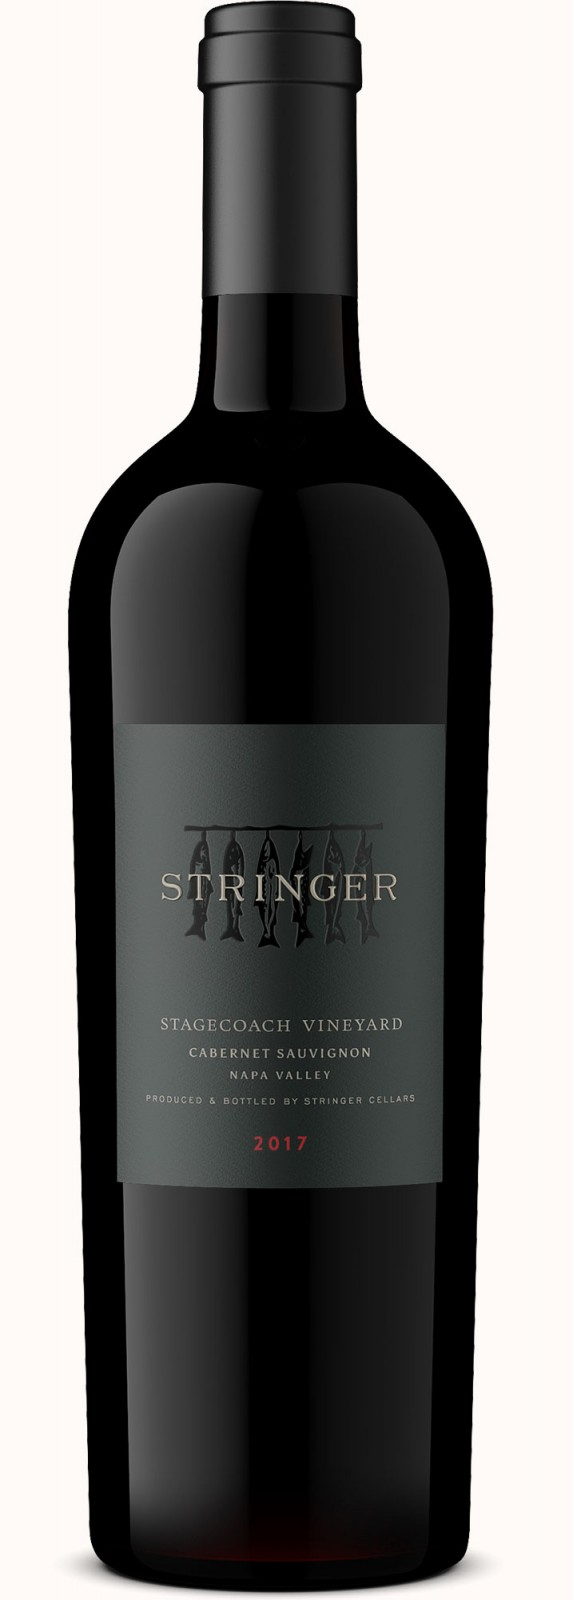 Stagecoach Vineyard Cabernet Sauvignon 2017 Napa Valley—CA - Stringer Cellars